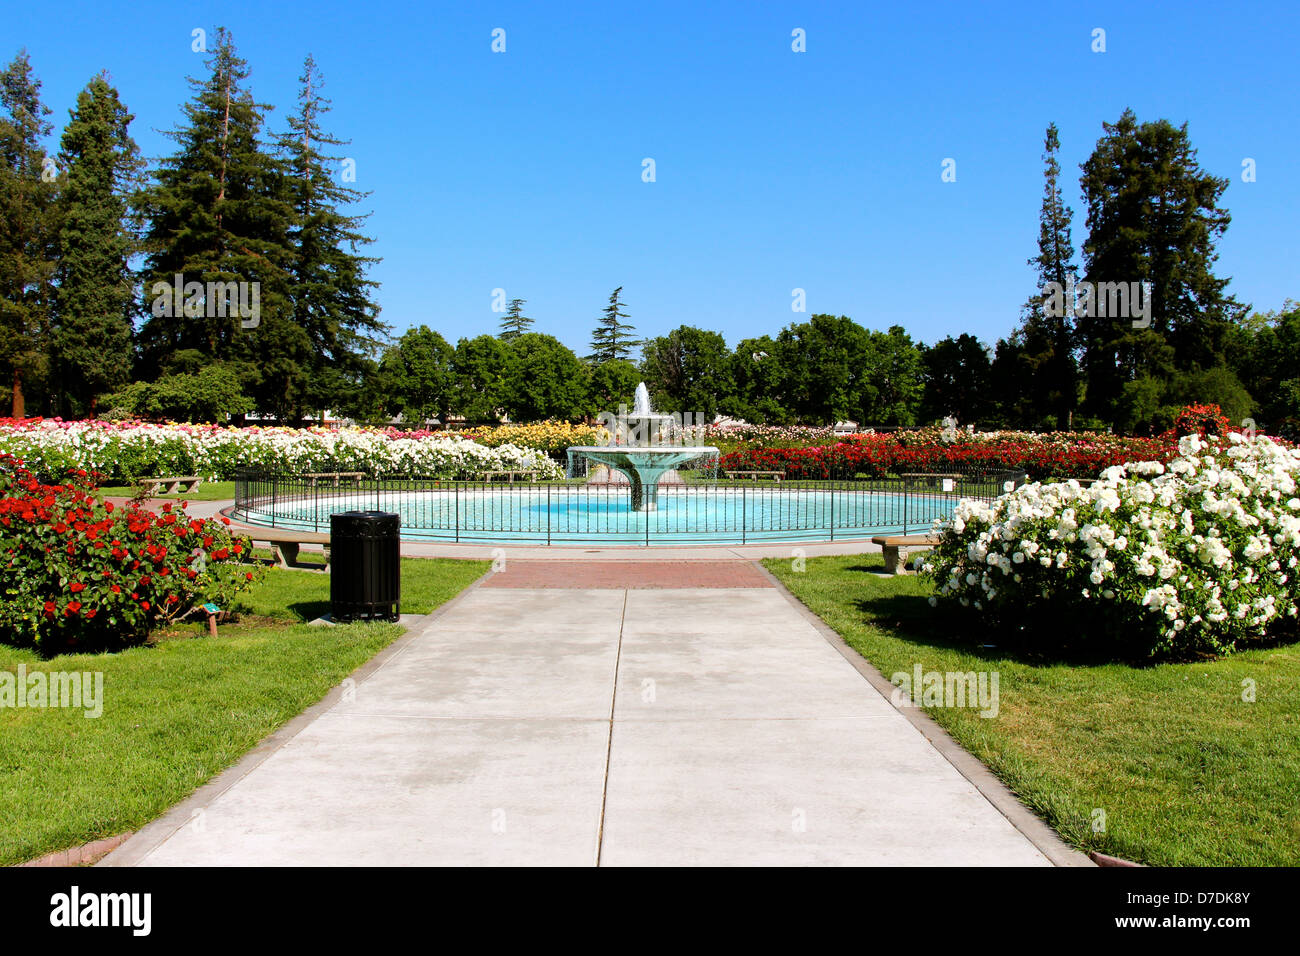 Roses In Garden: San Jose Municipal Rose Garden In San Jose, California